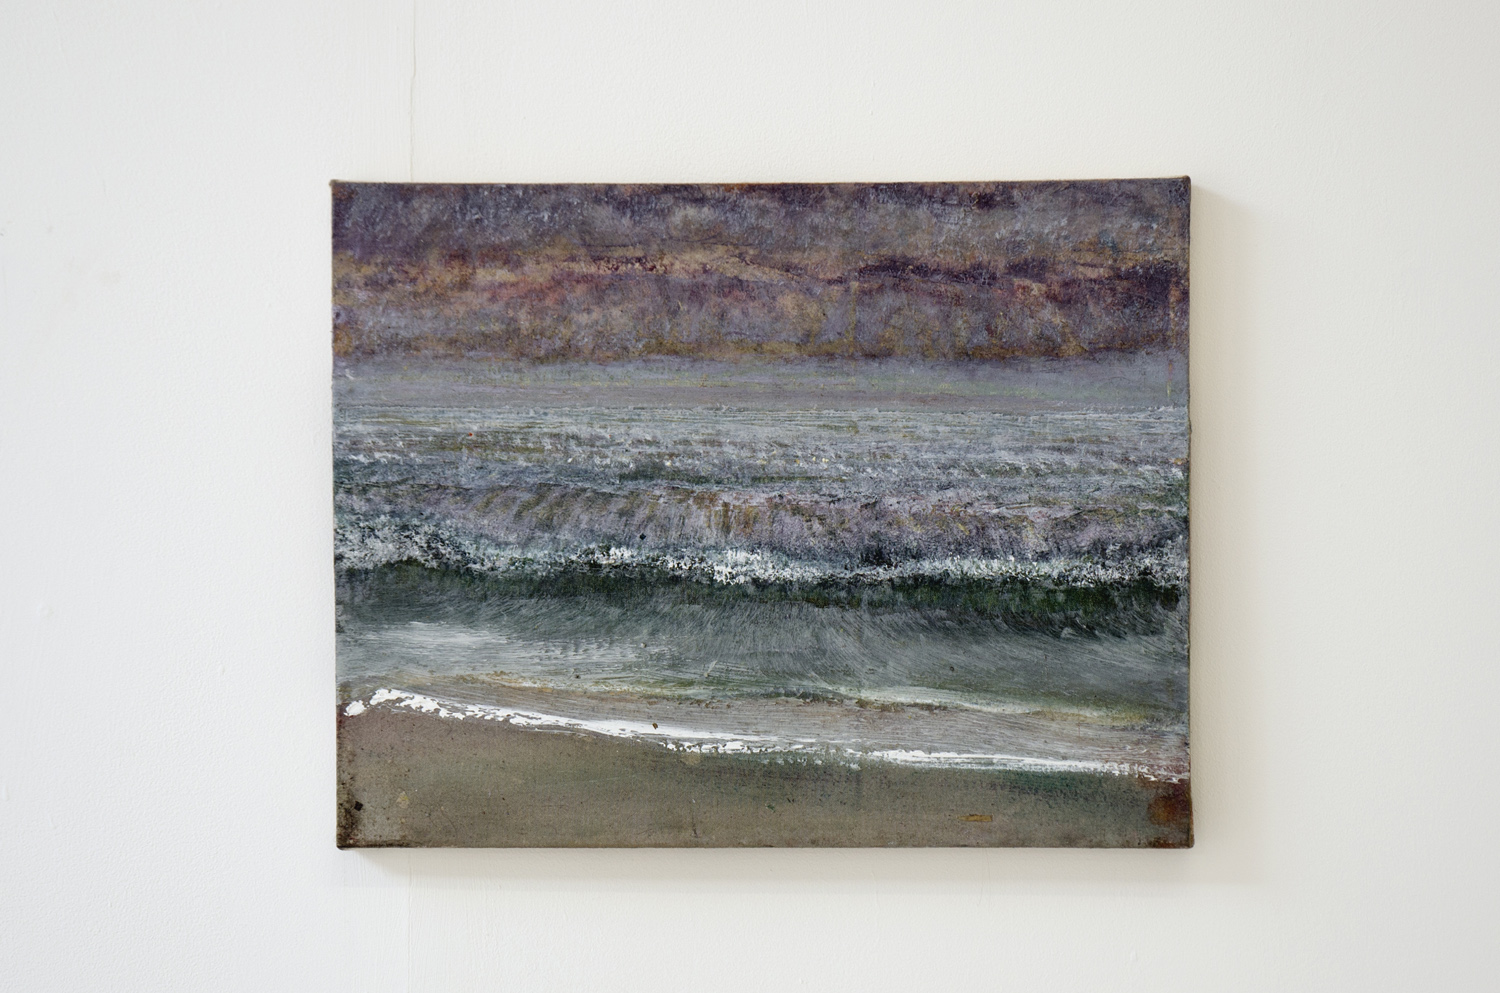 Merlin James, Purple Sky, 2004 - 05,acrylic on canvas,37 x 48 cm,The artist and Mummery + Schnelle, London